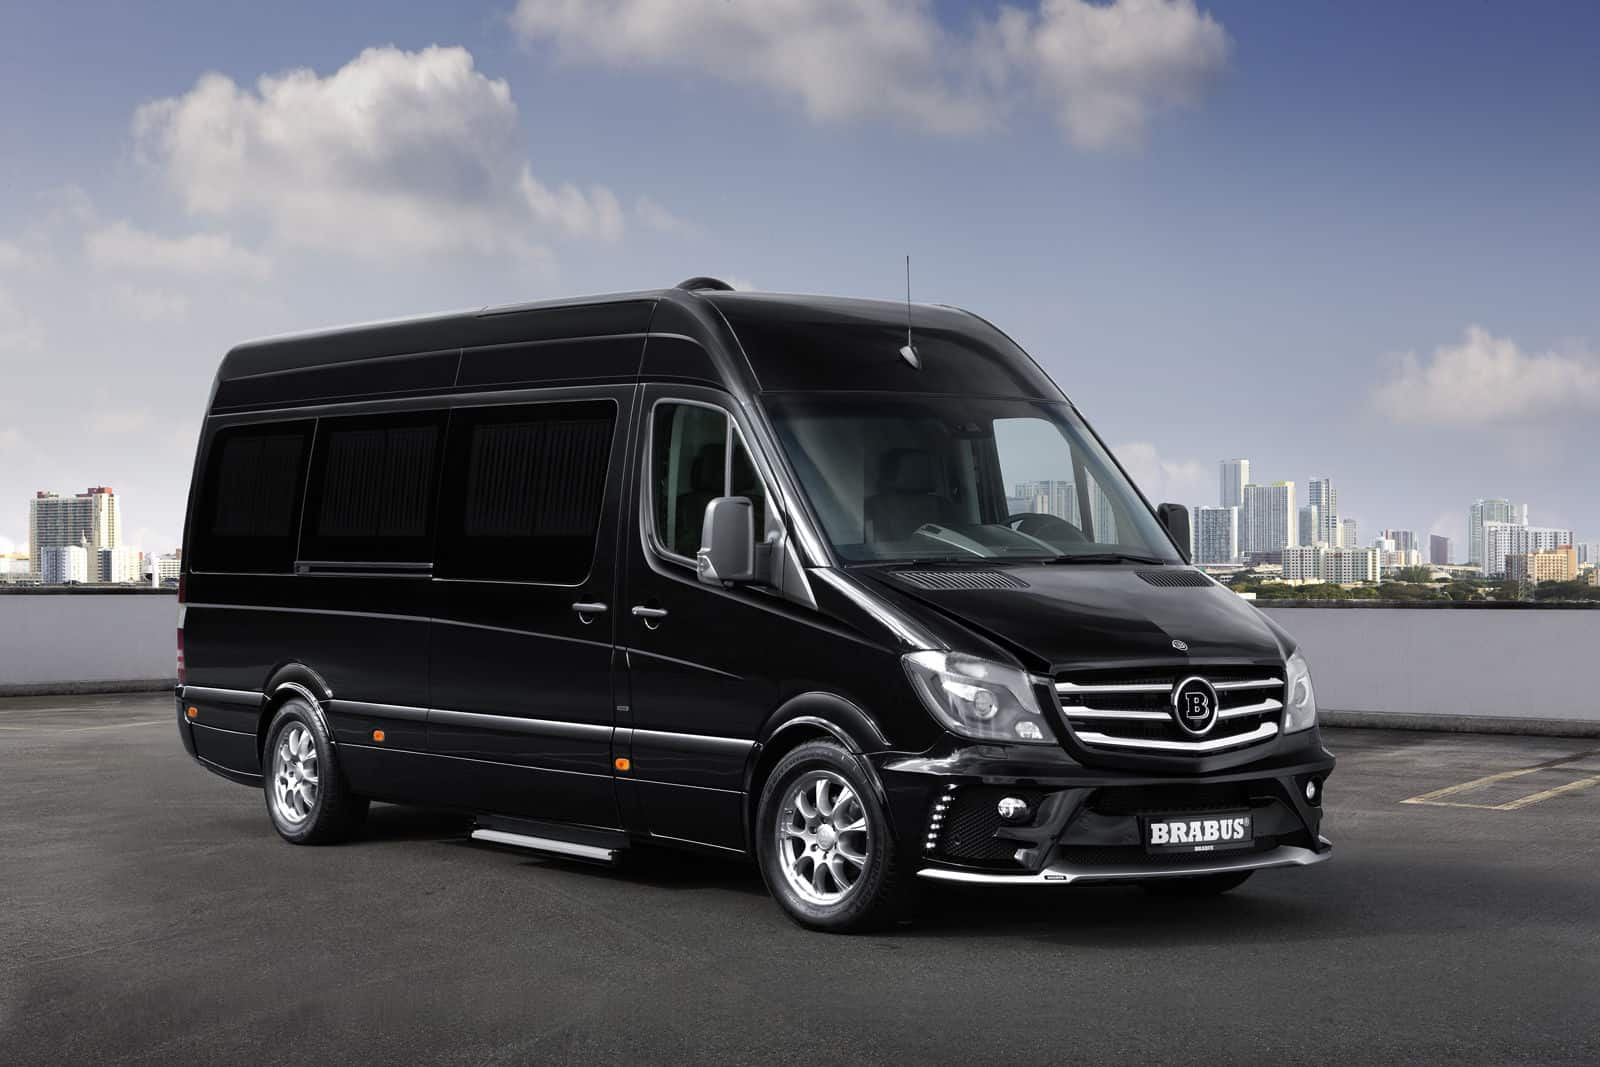 Brabus business van Sprinter